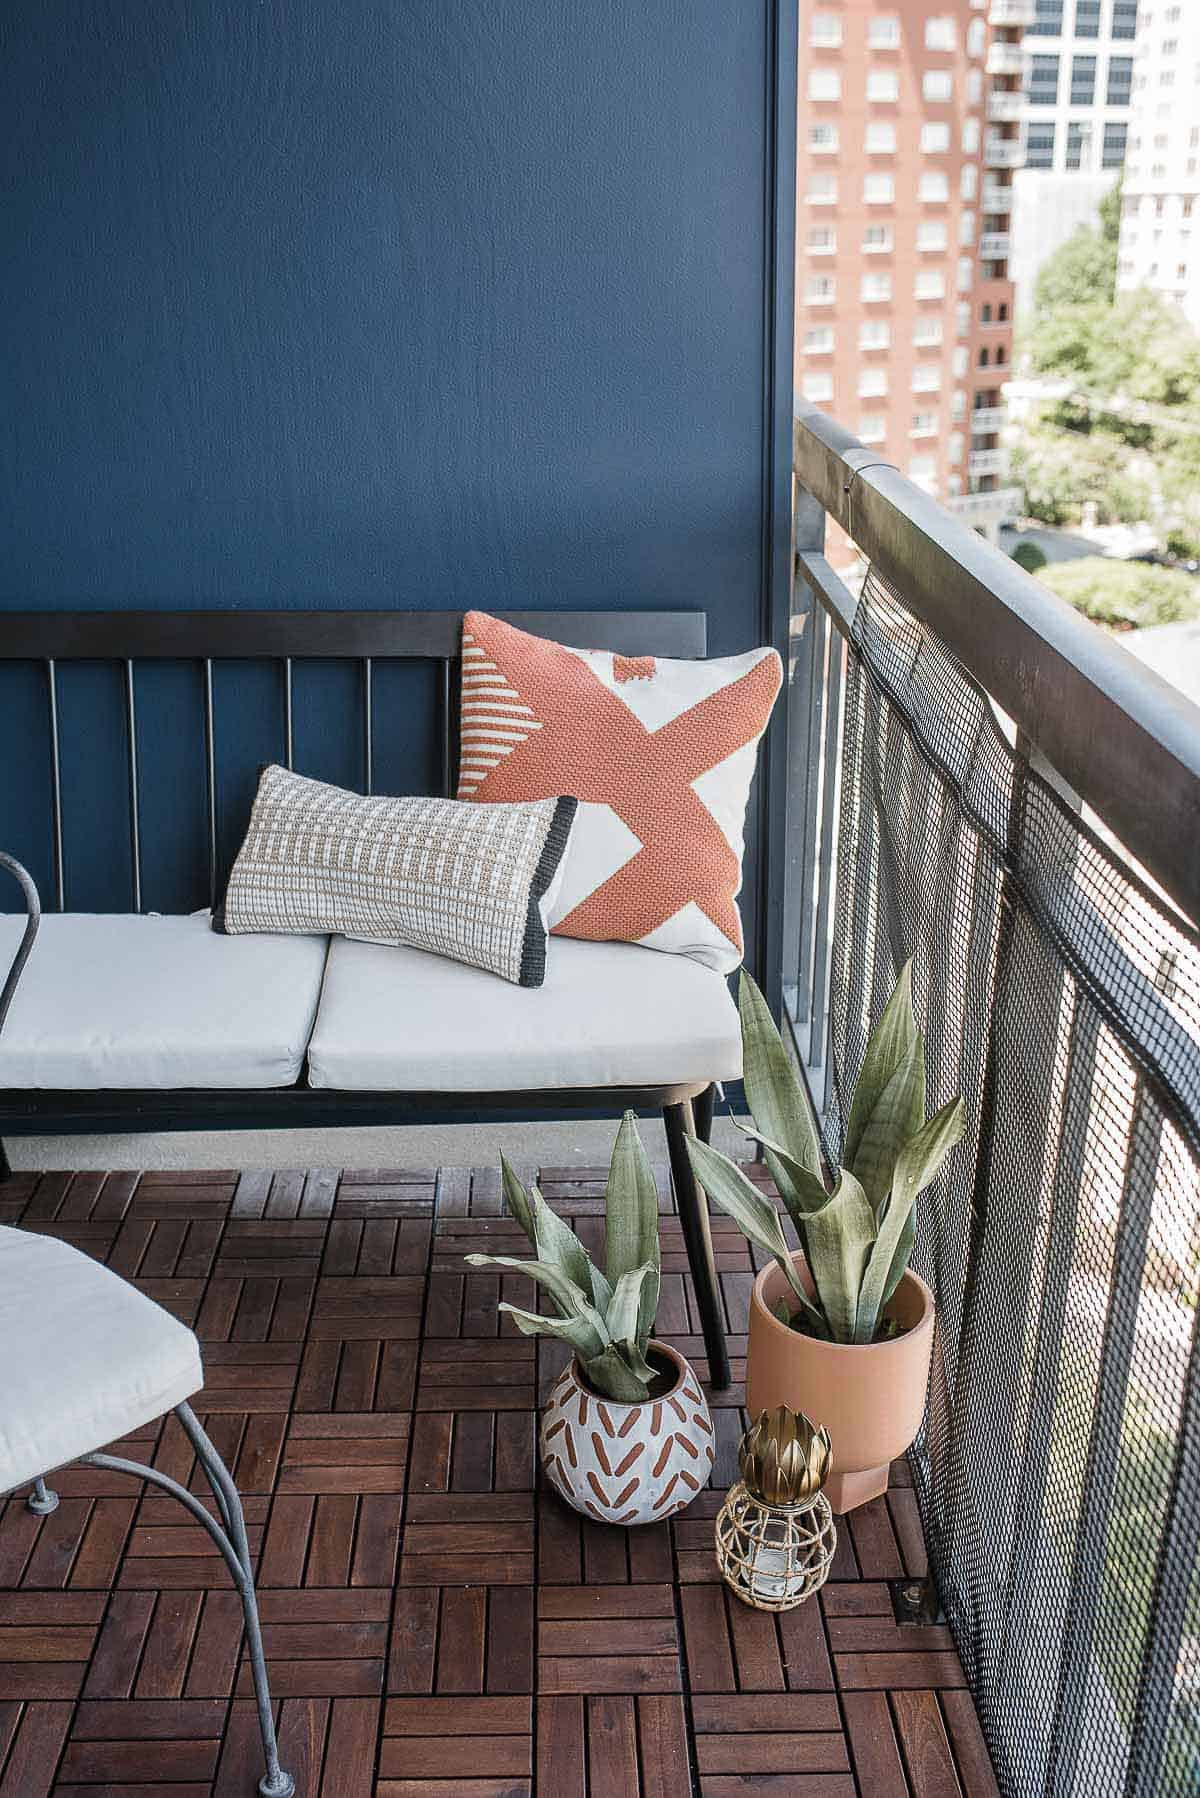 Patio ideas for small spaces, snake plants